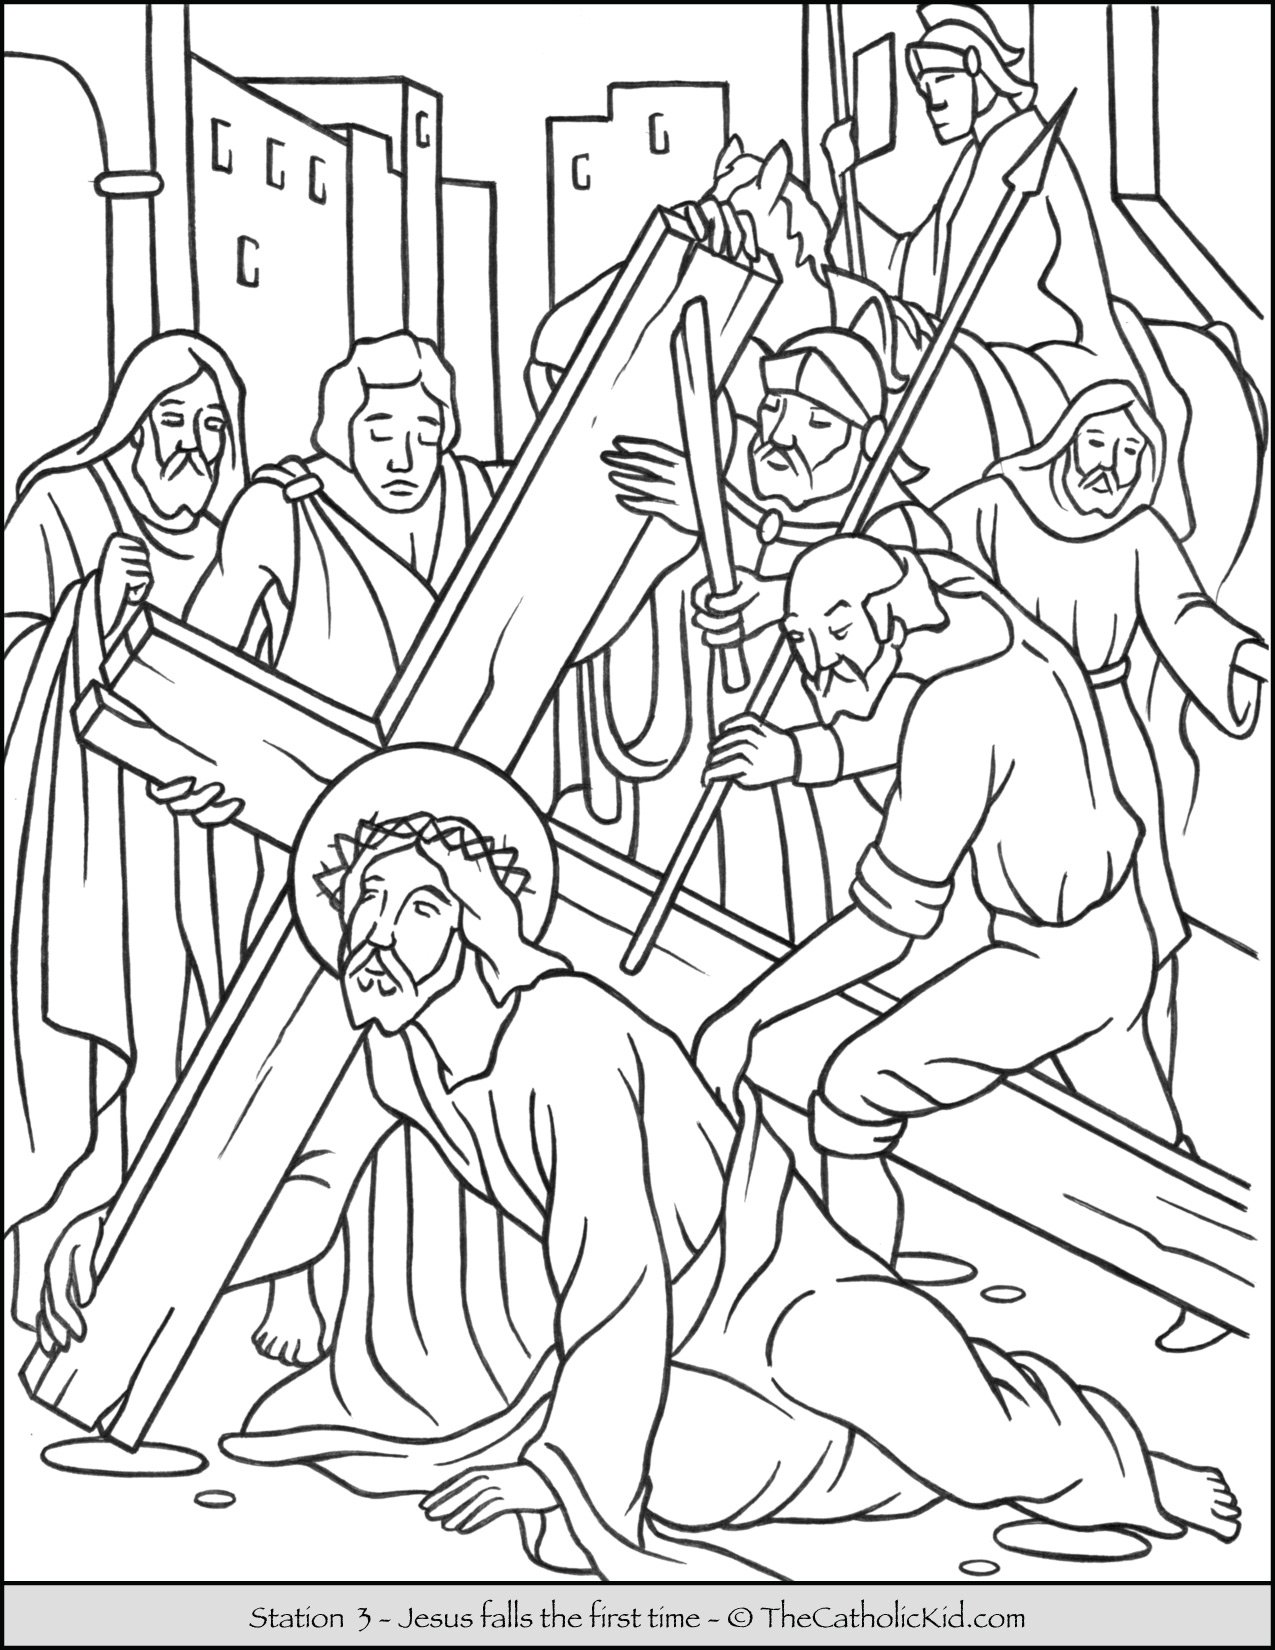 Stations of the Cross Catholic Coloring Pages for Kids 3